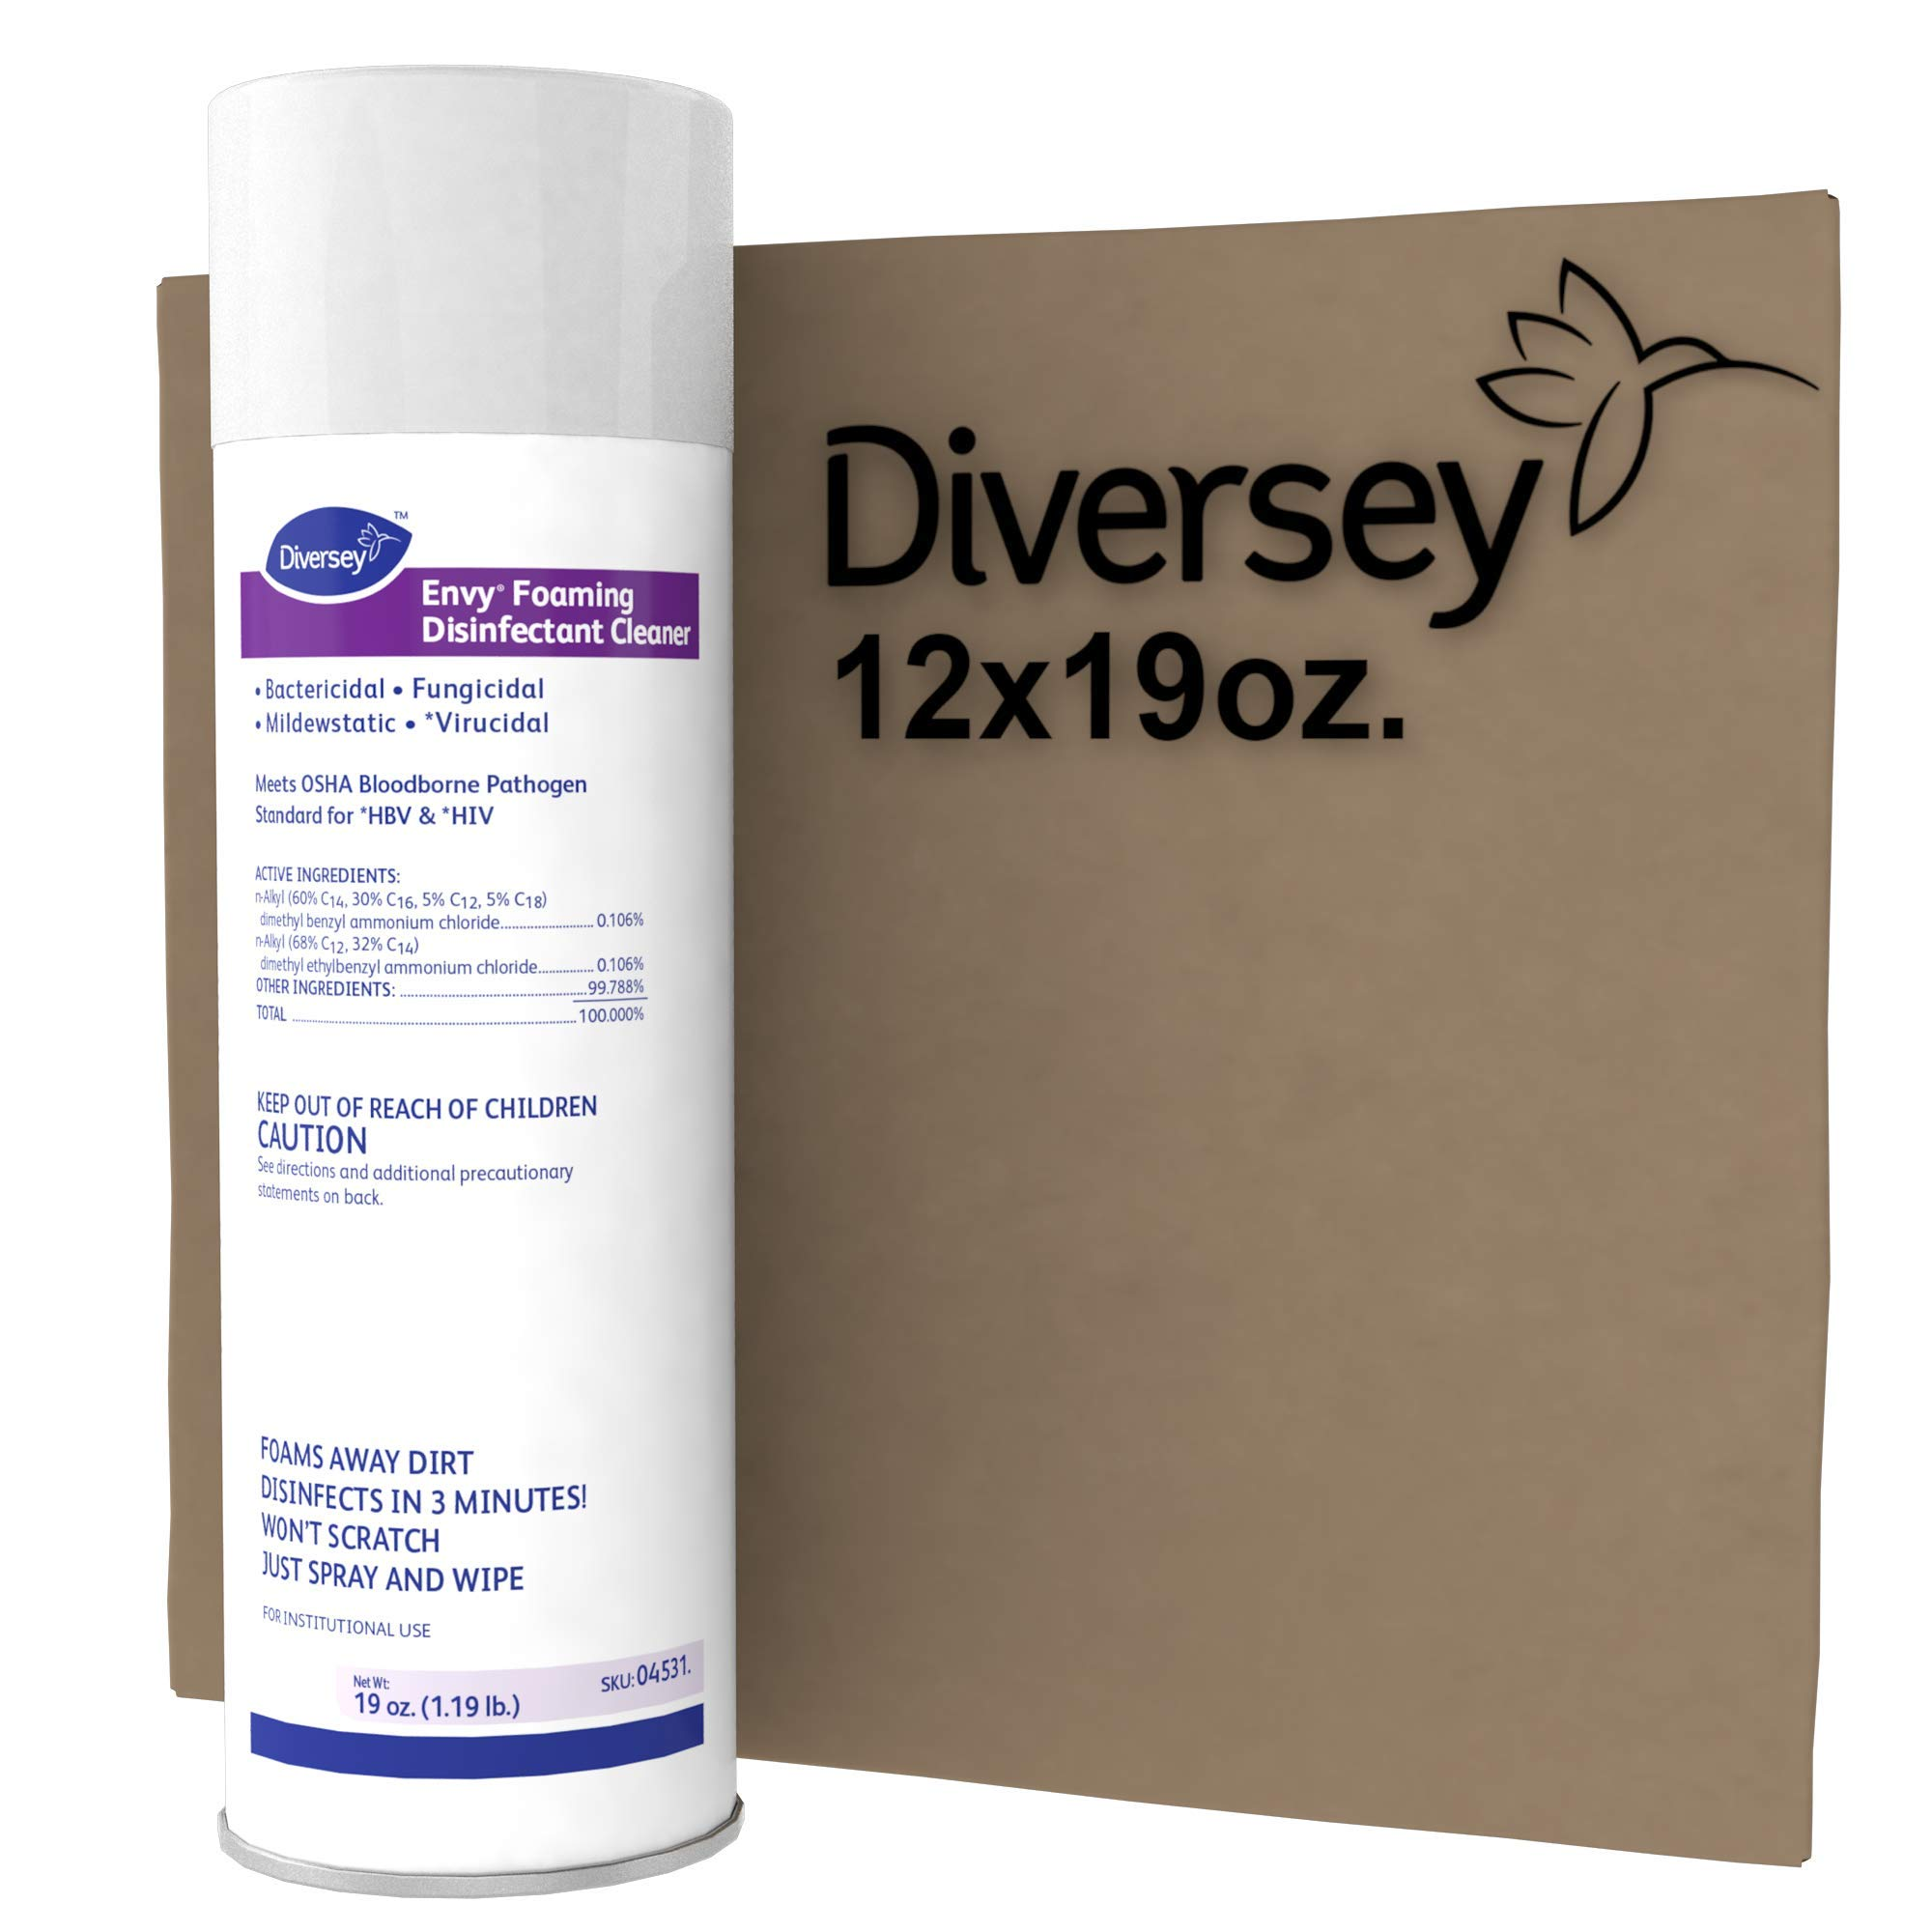 Diversey Envy 04531 Foaming Disinfectant Cleaner, 12 x 19 oz./539 g Aerosol by Diversey (Image #4)